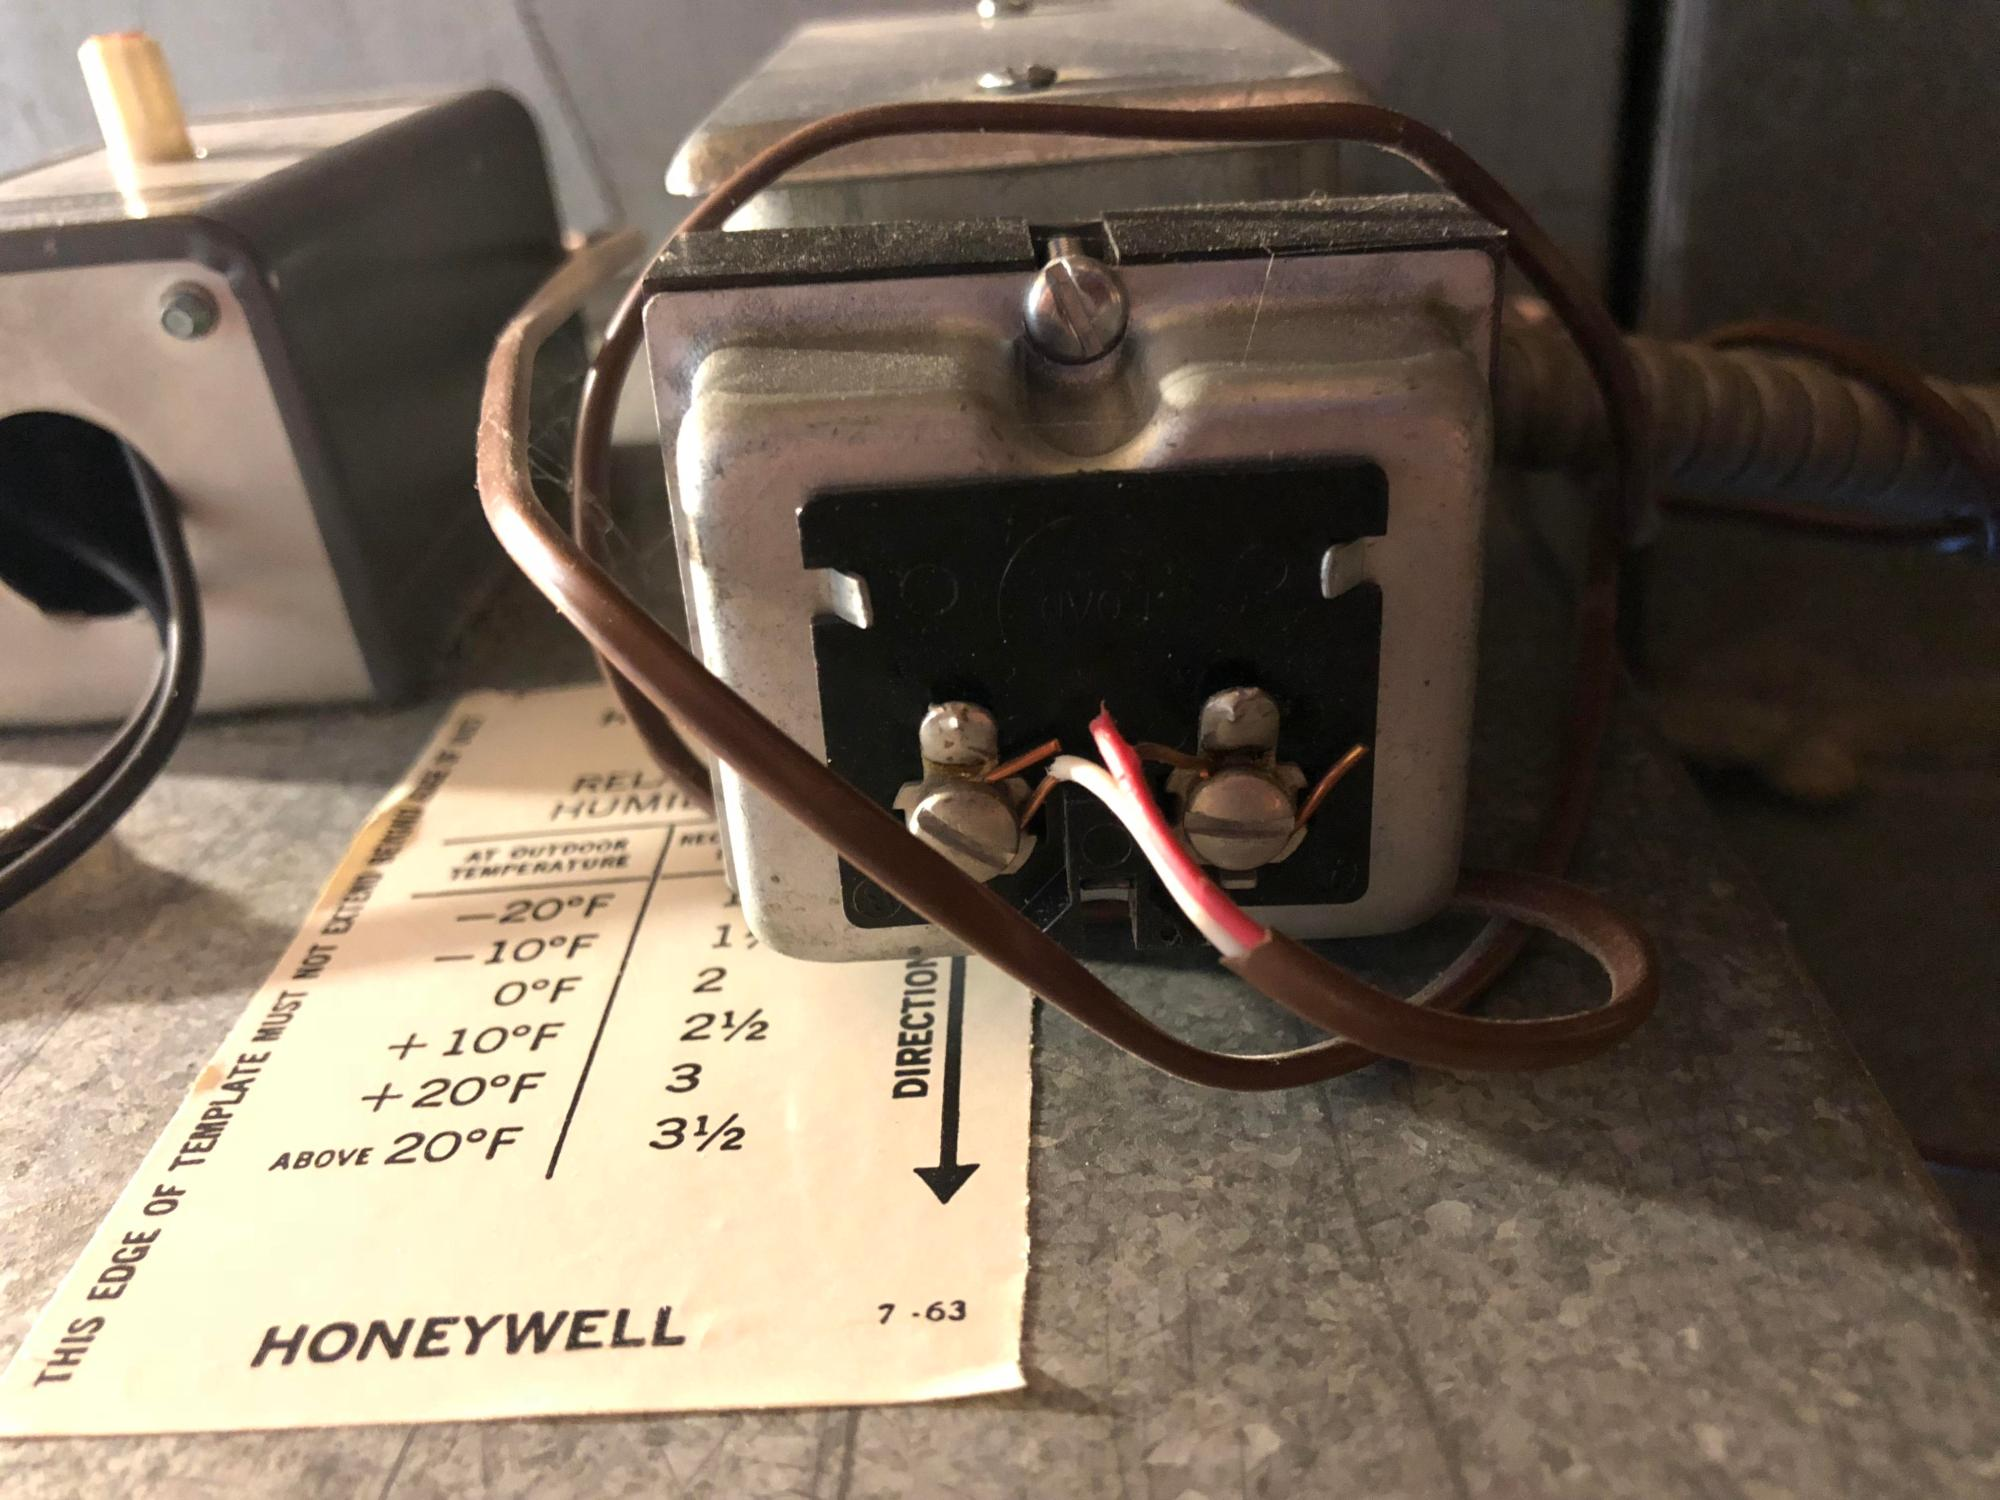 hight resolution of is this my doorbell transformer attached to furnace